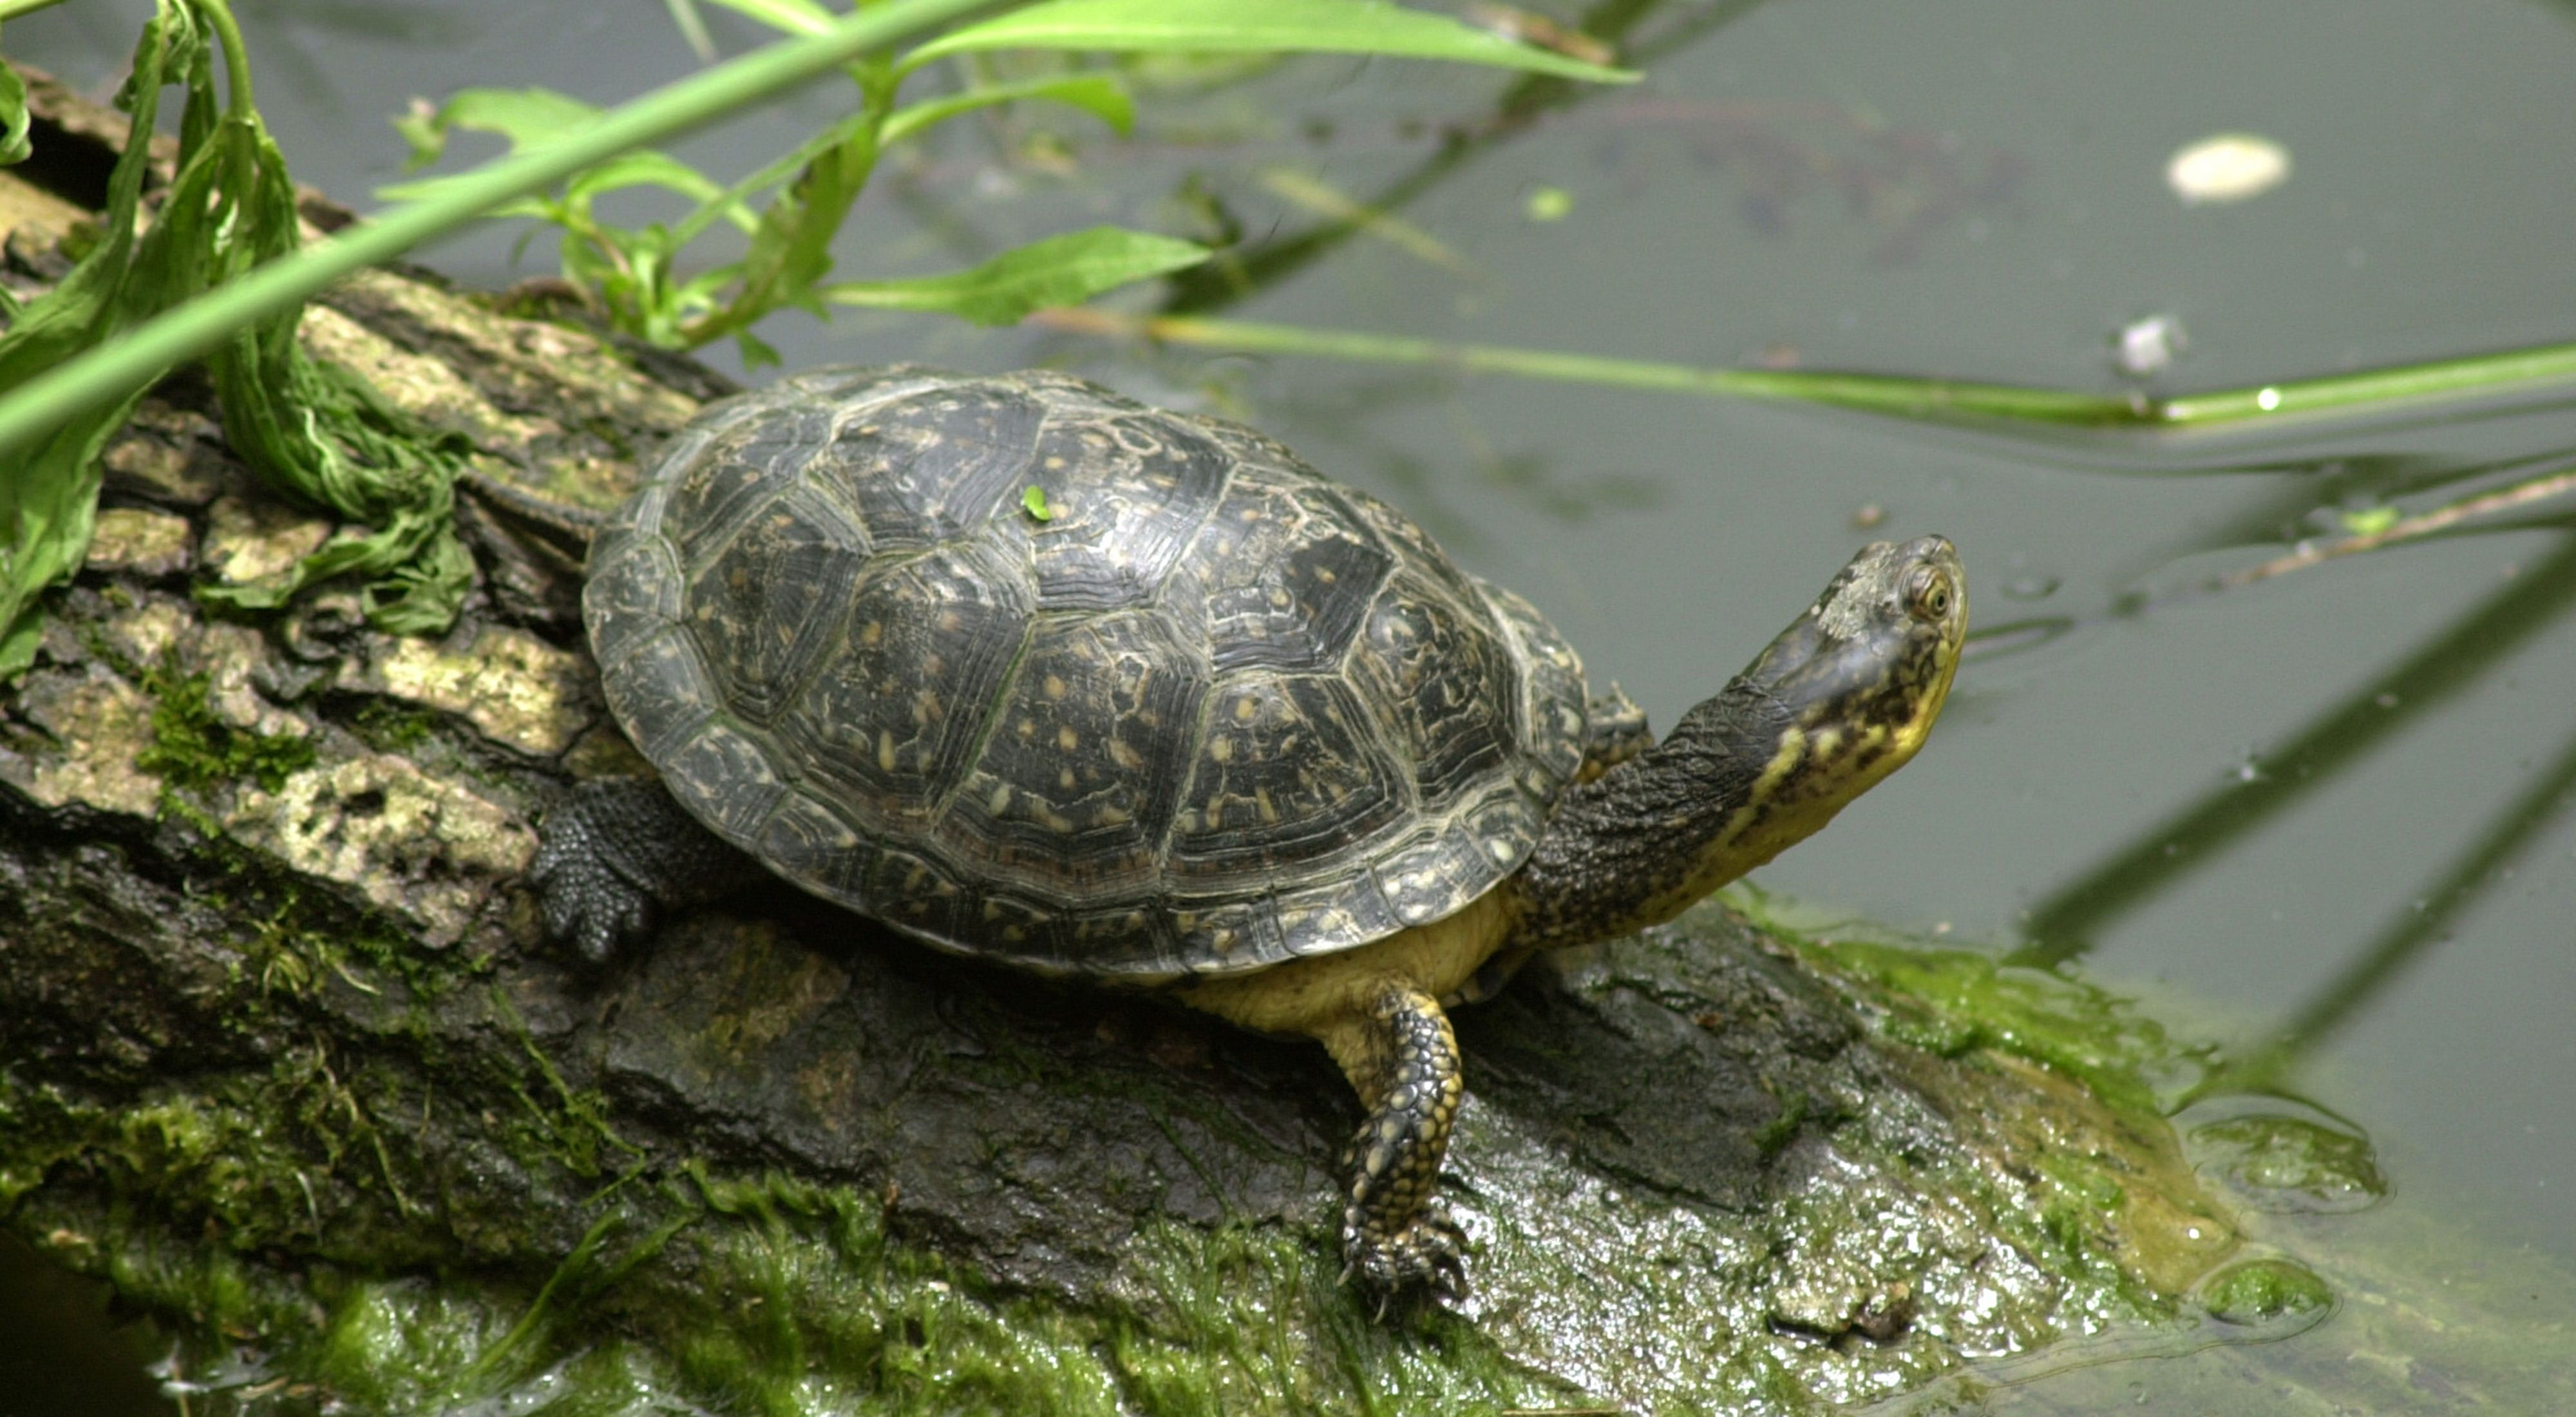 A turtle sits on a log in the water.